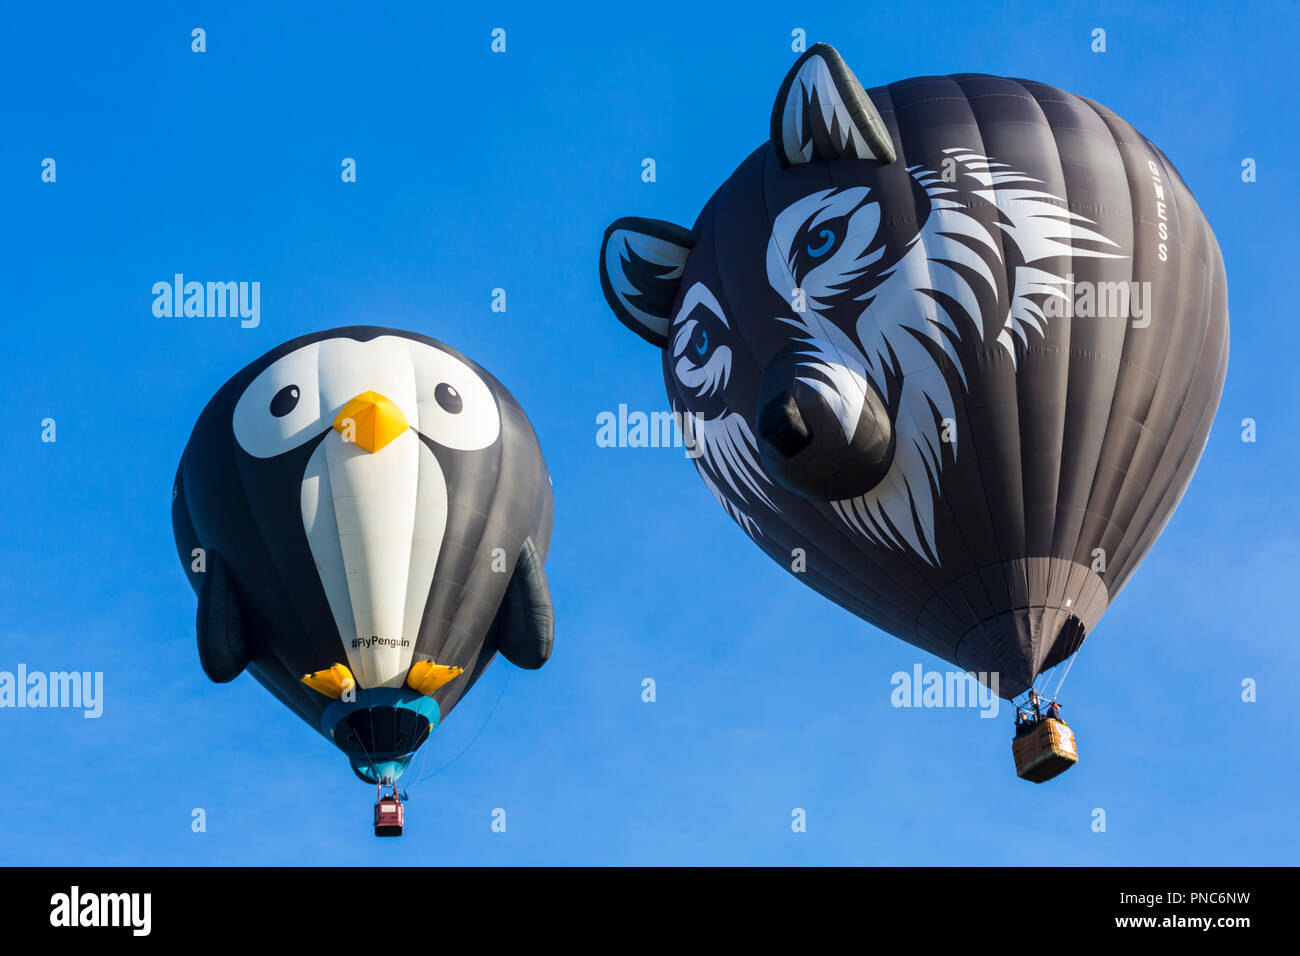 Longleat penguin hot air balloon and Wes the Wolf hot air balloon in the sky at Longleat Sky Safari, Wiltshire, UK in September - Stock Image